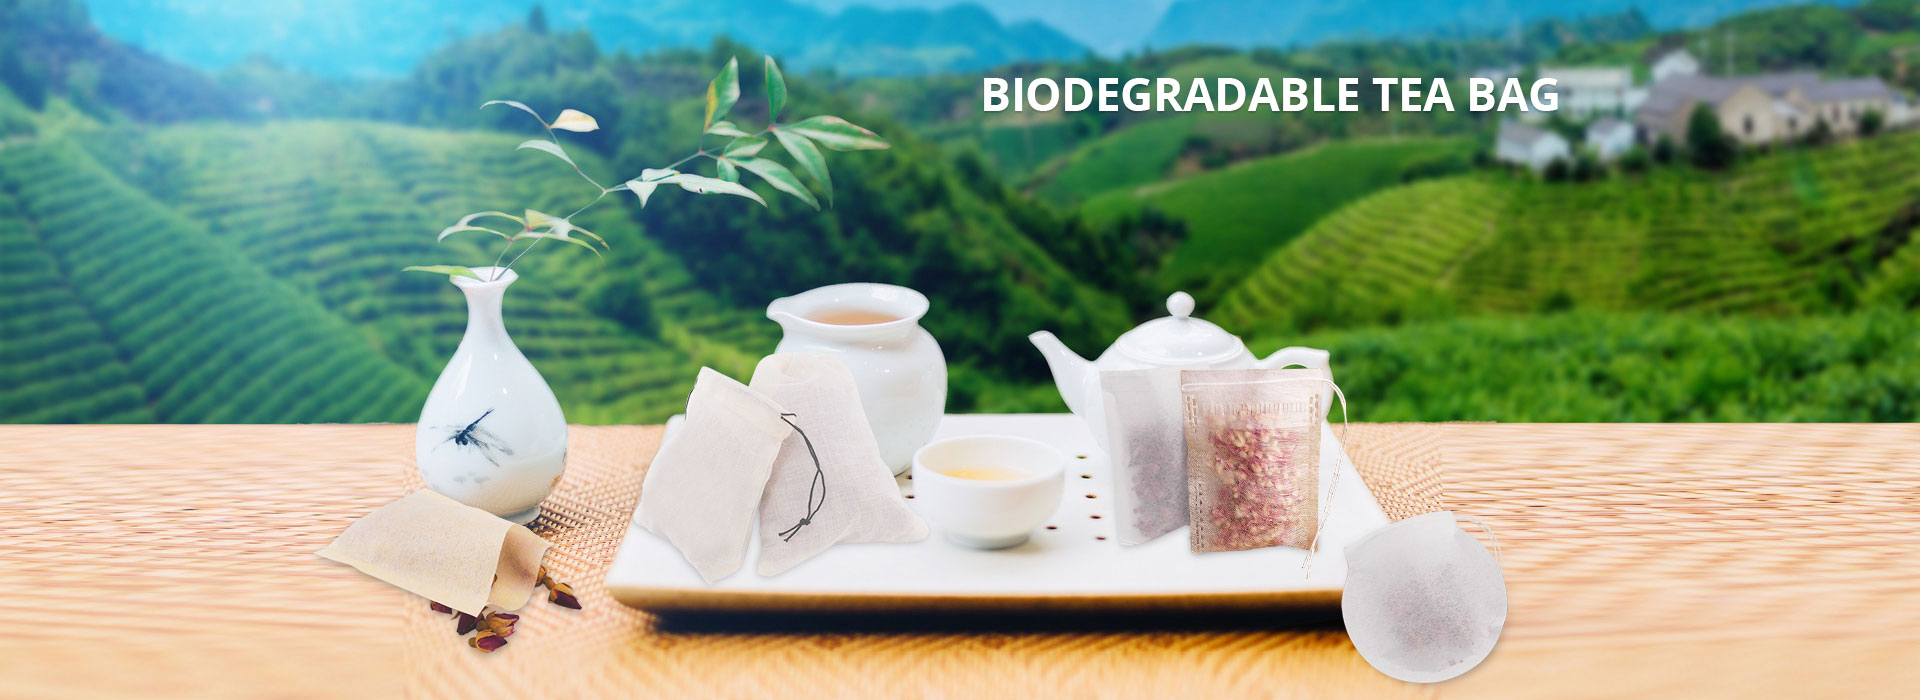 Biodegradable Tea Bag